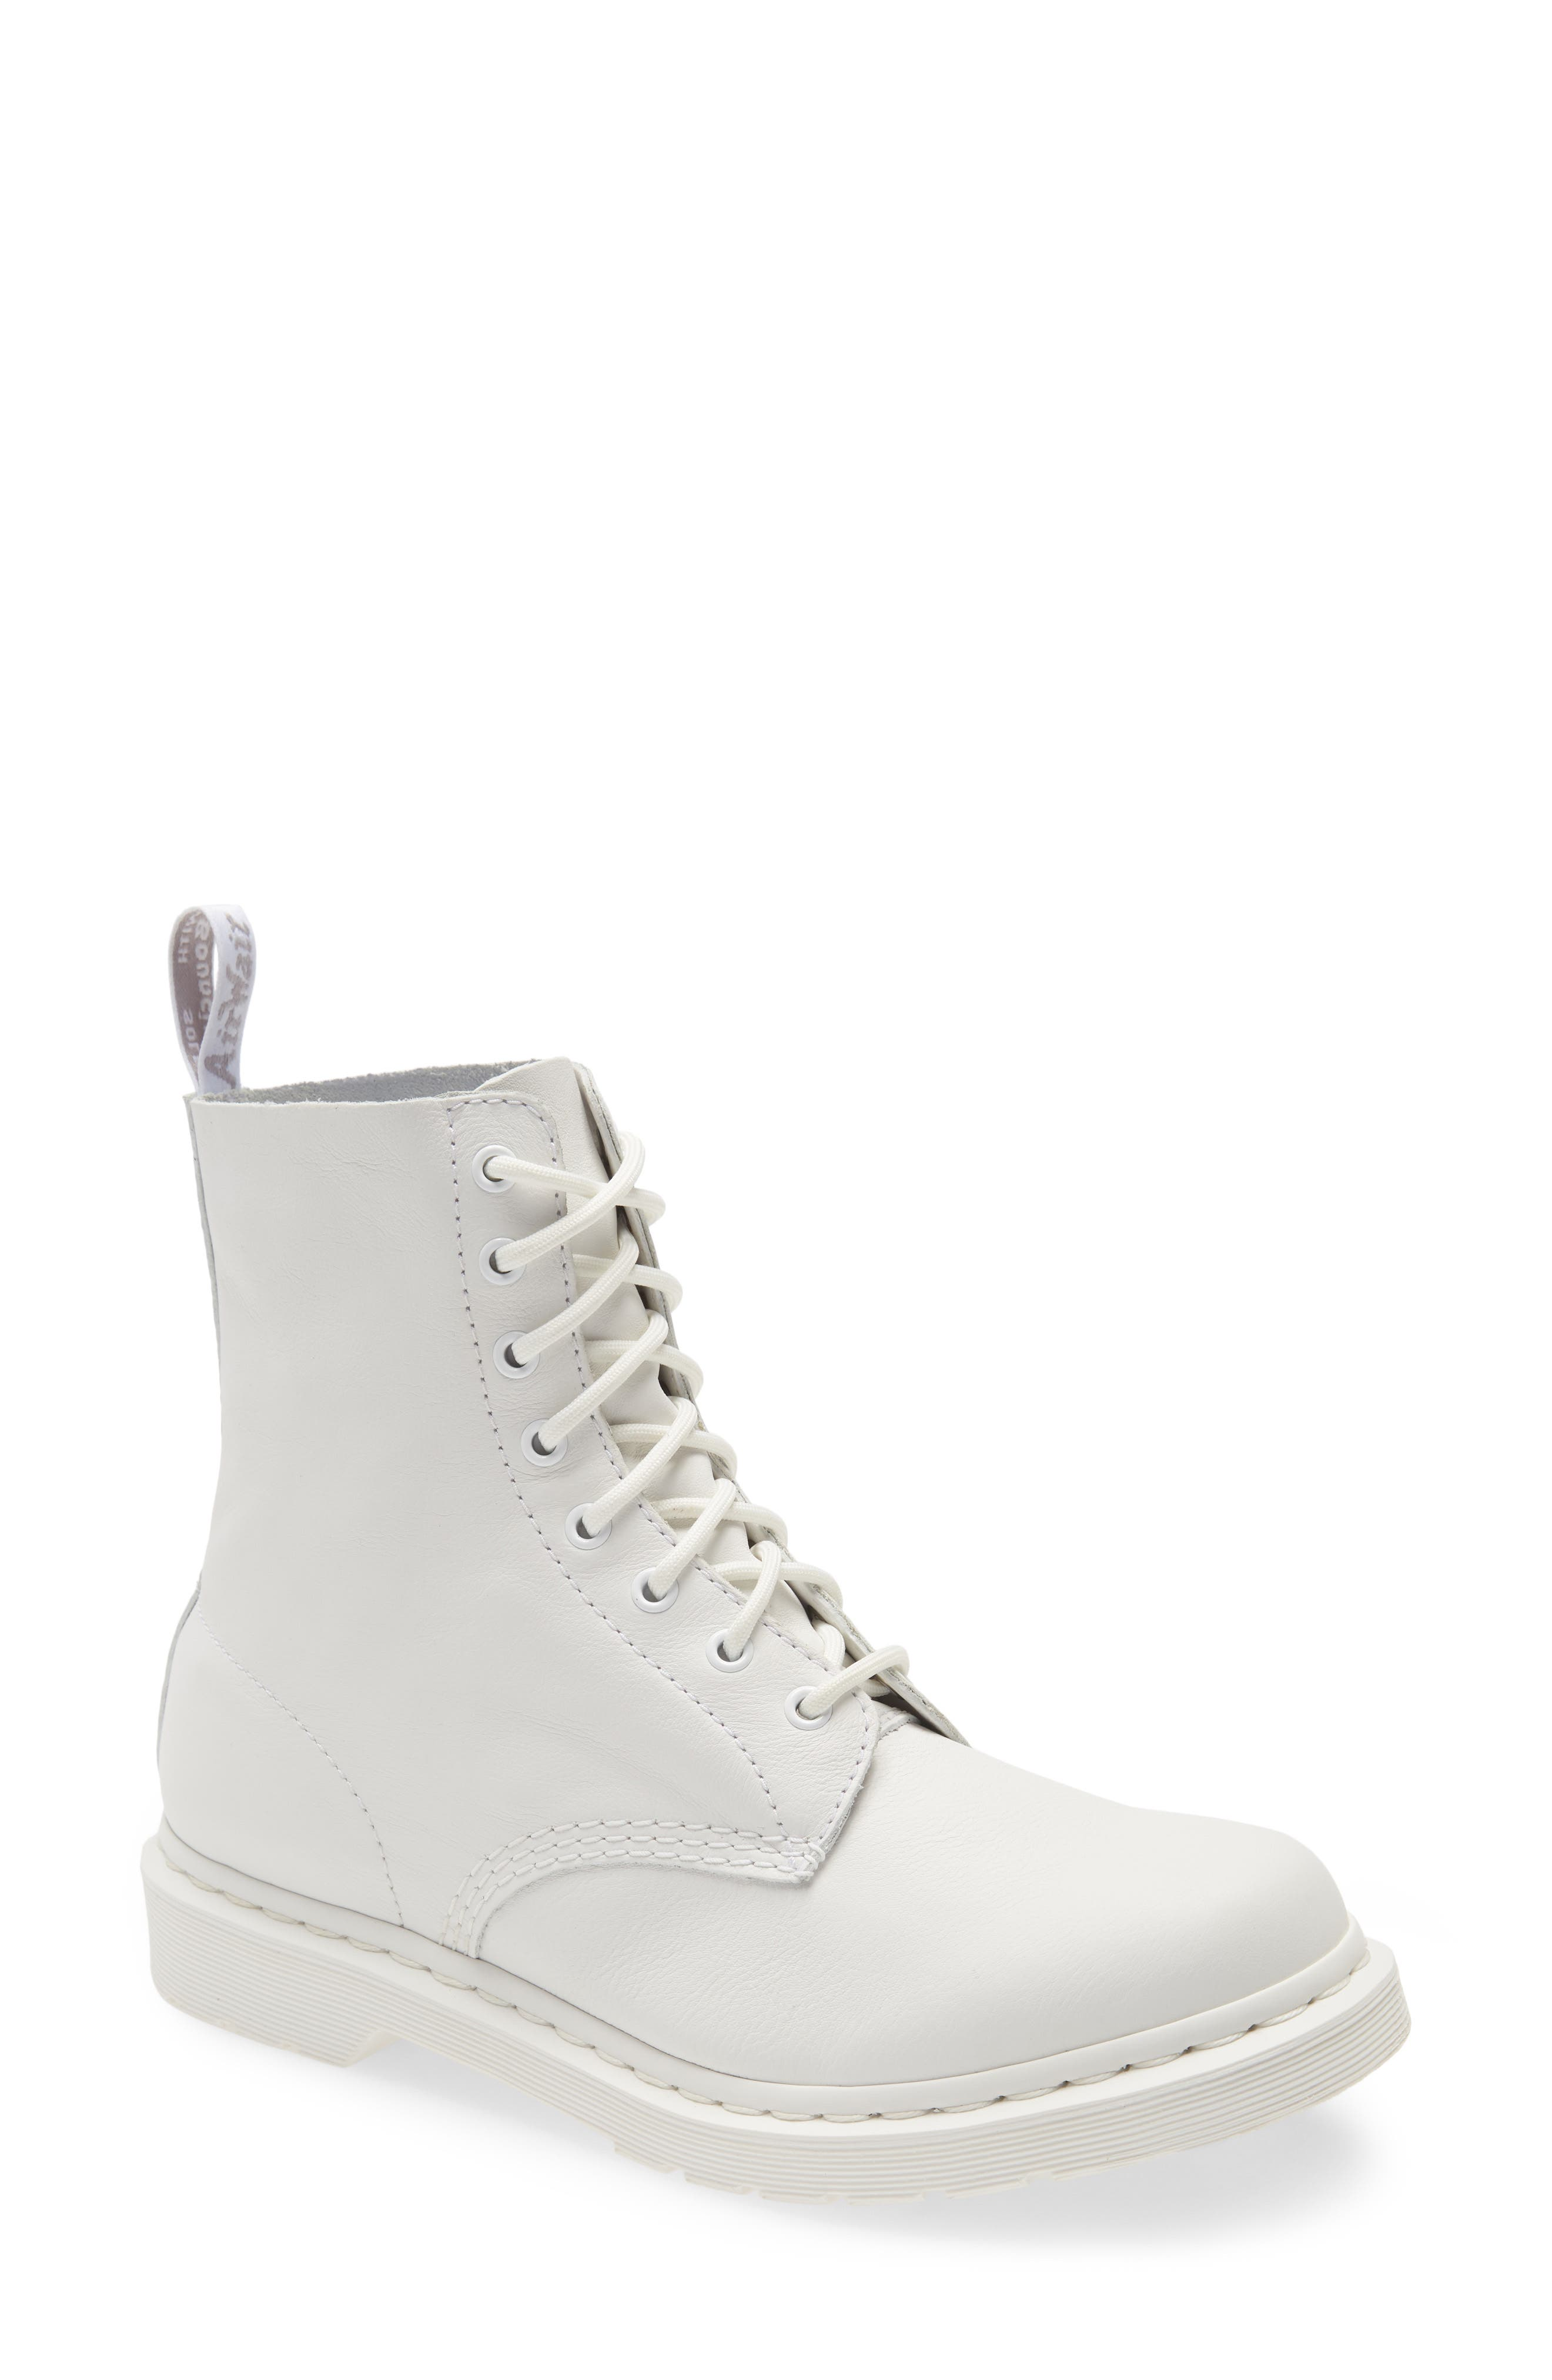 white boots Julian model. Women white ankle boots cool bootshandmade shoes women boots flat boots white shoes womens booties